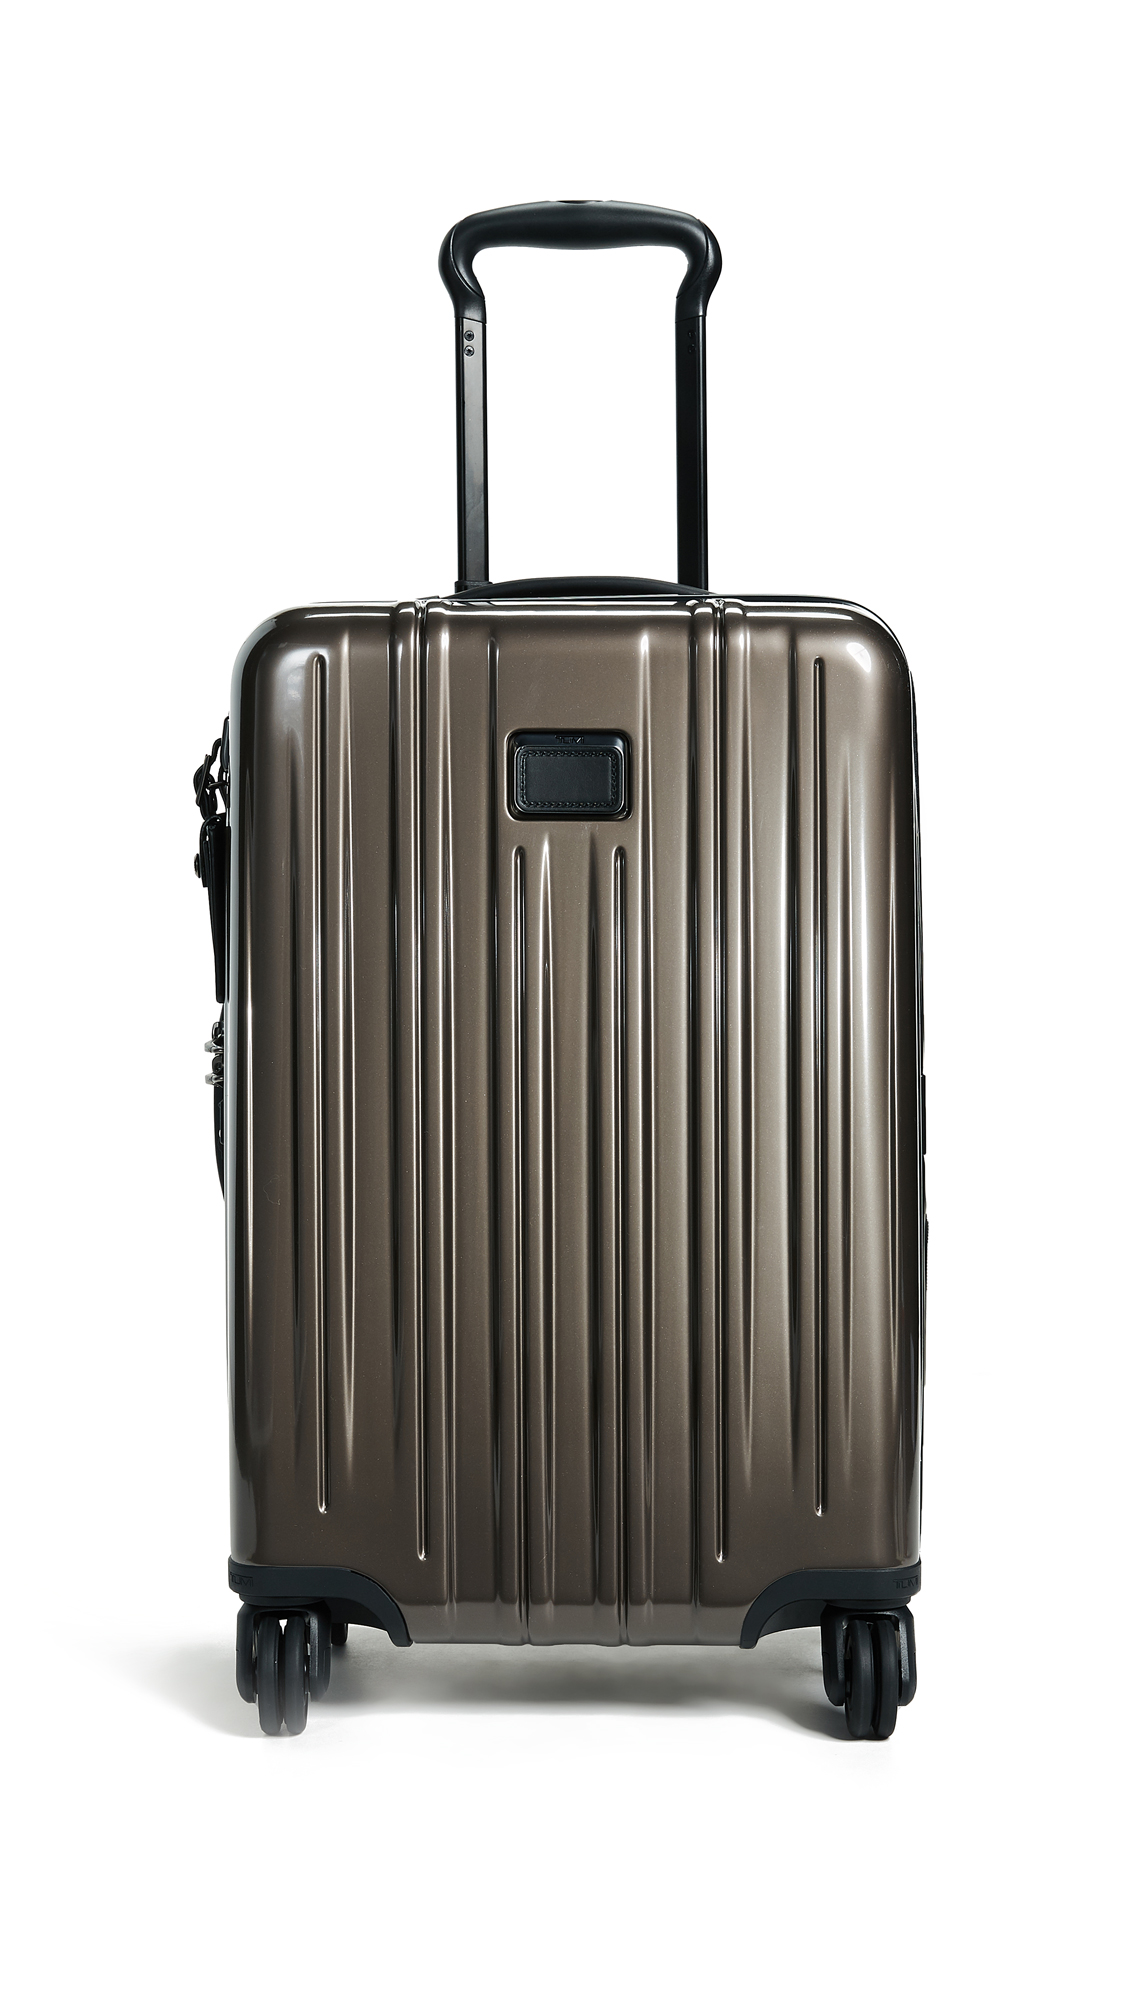 V3 Short Trip 26-Inch Expandable Wheeled Packing Case - Metallic, Mink